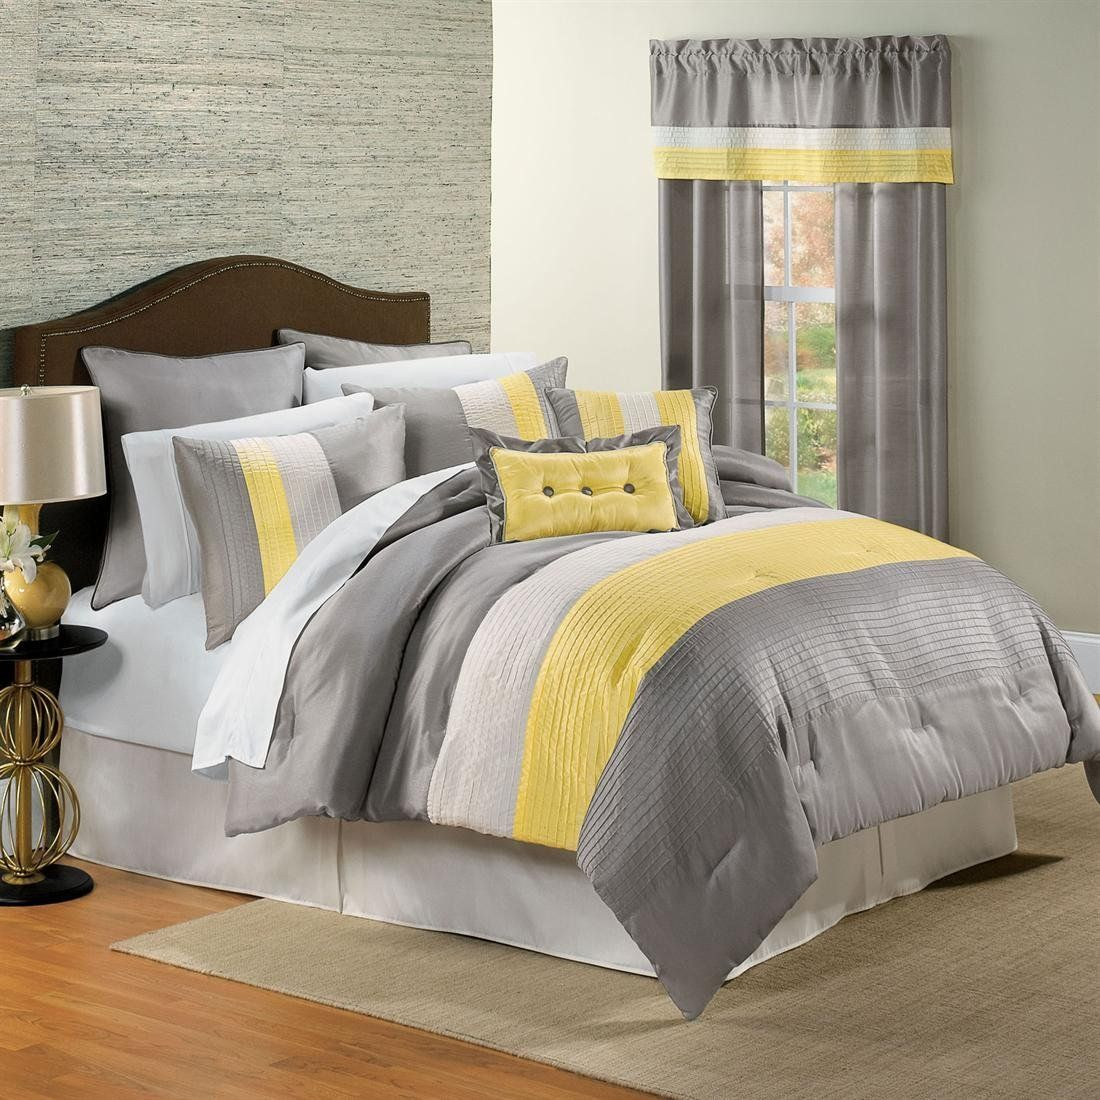 Superieur Yellow Gray Bedding Set